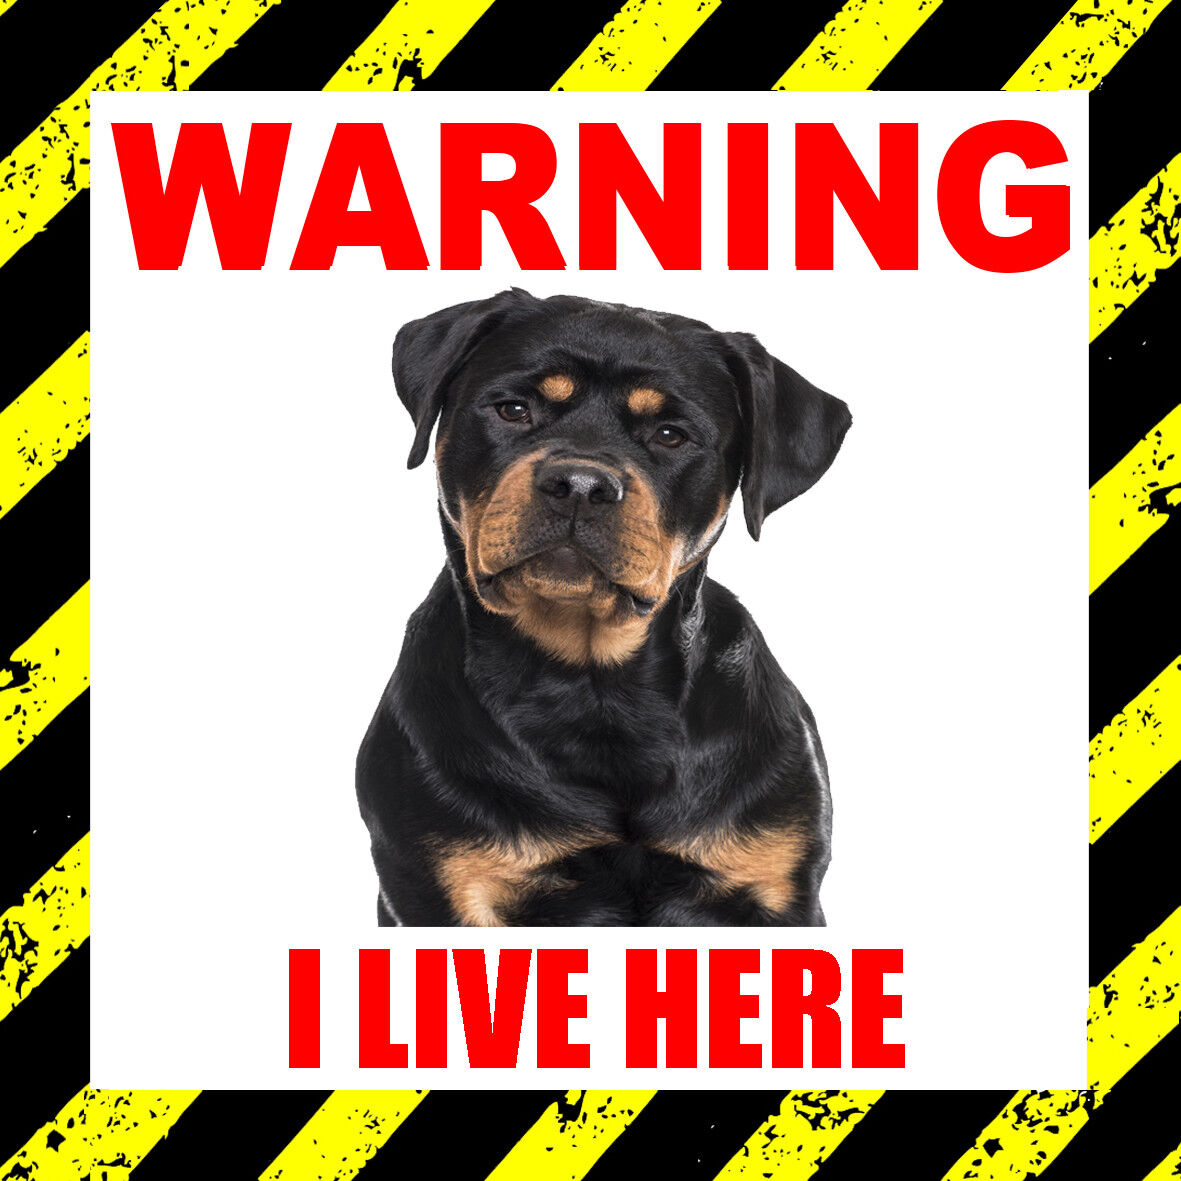 Details about warning i live here rottweiler door window sticker dog pet animal